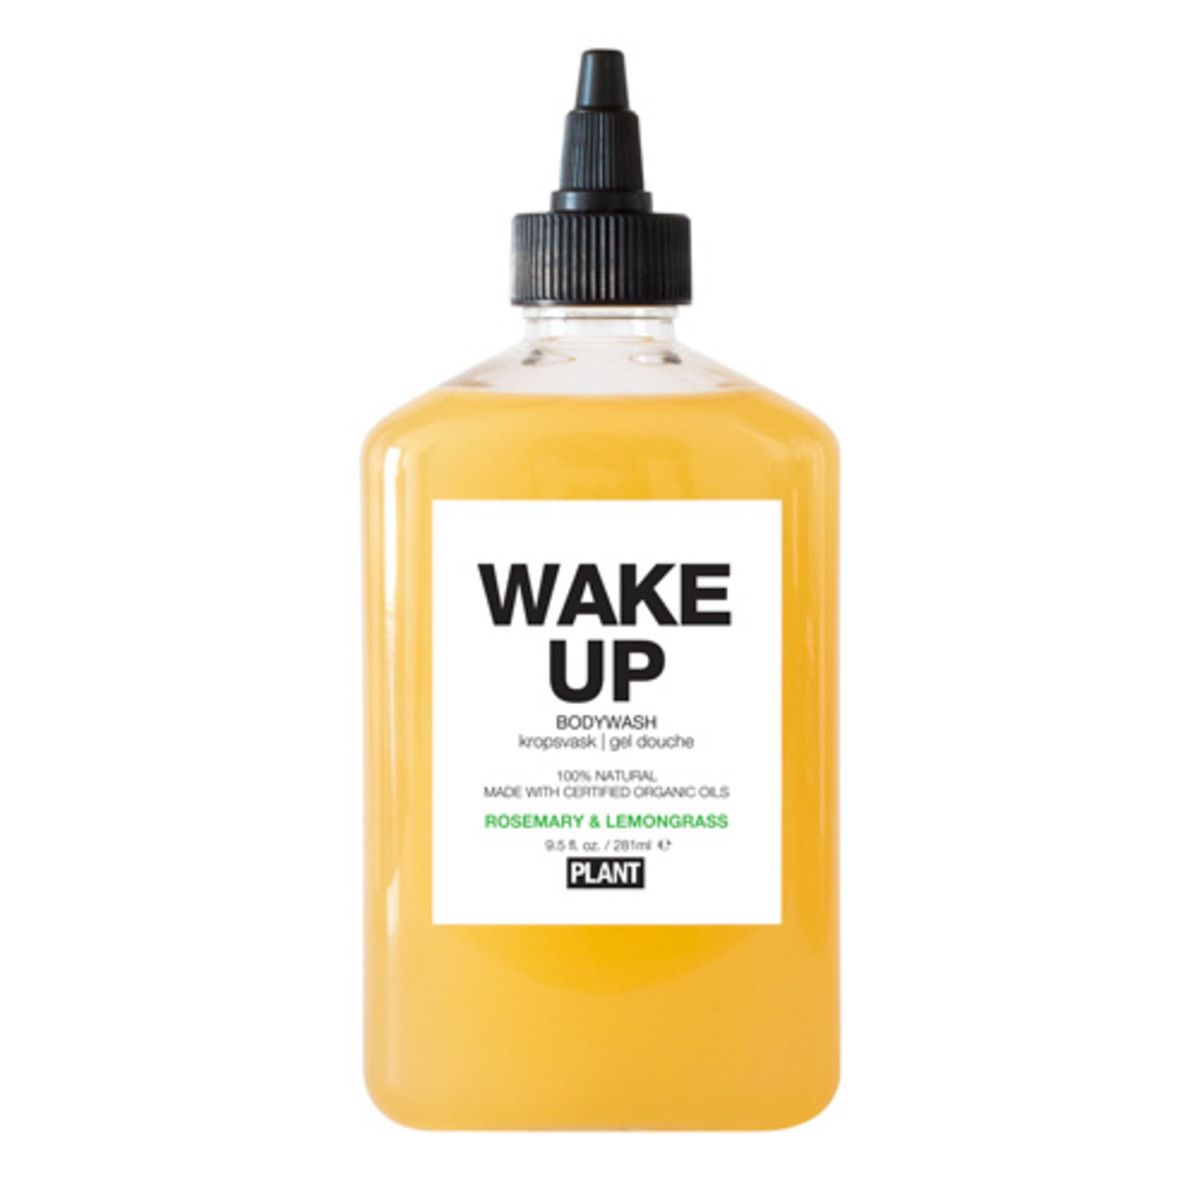 Plant Wake Up Bodywash